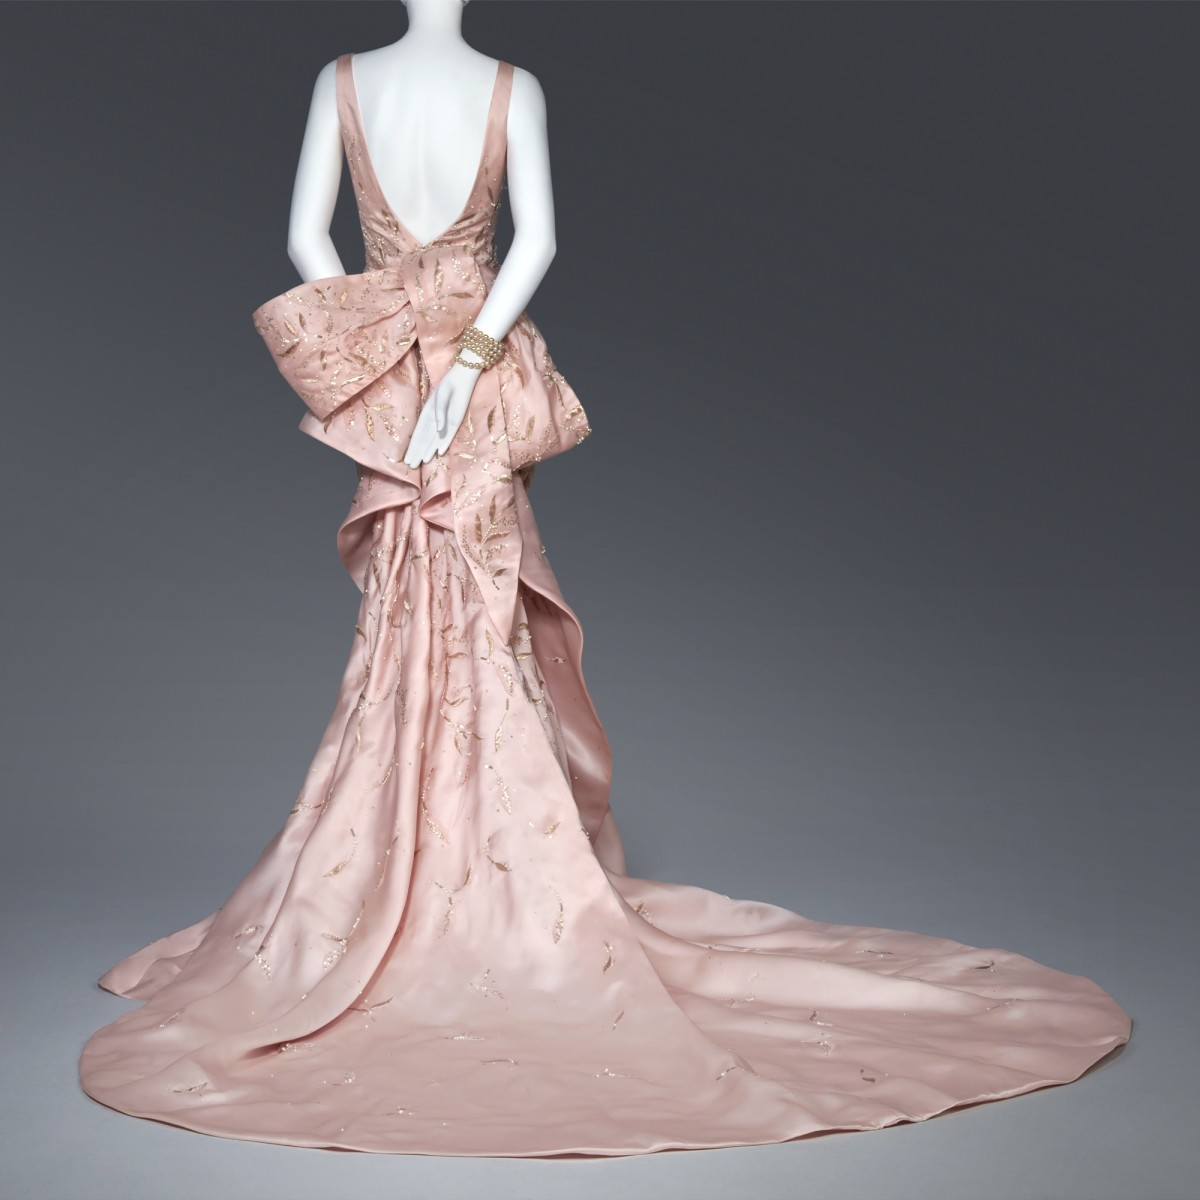 Taylor Swift's Met Ball dress, designed by Oscar de la Renta and on display at SCAD Fash. Photo: SCAD